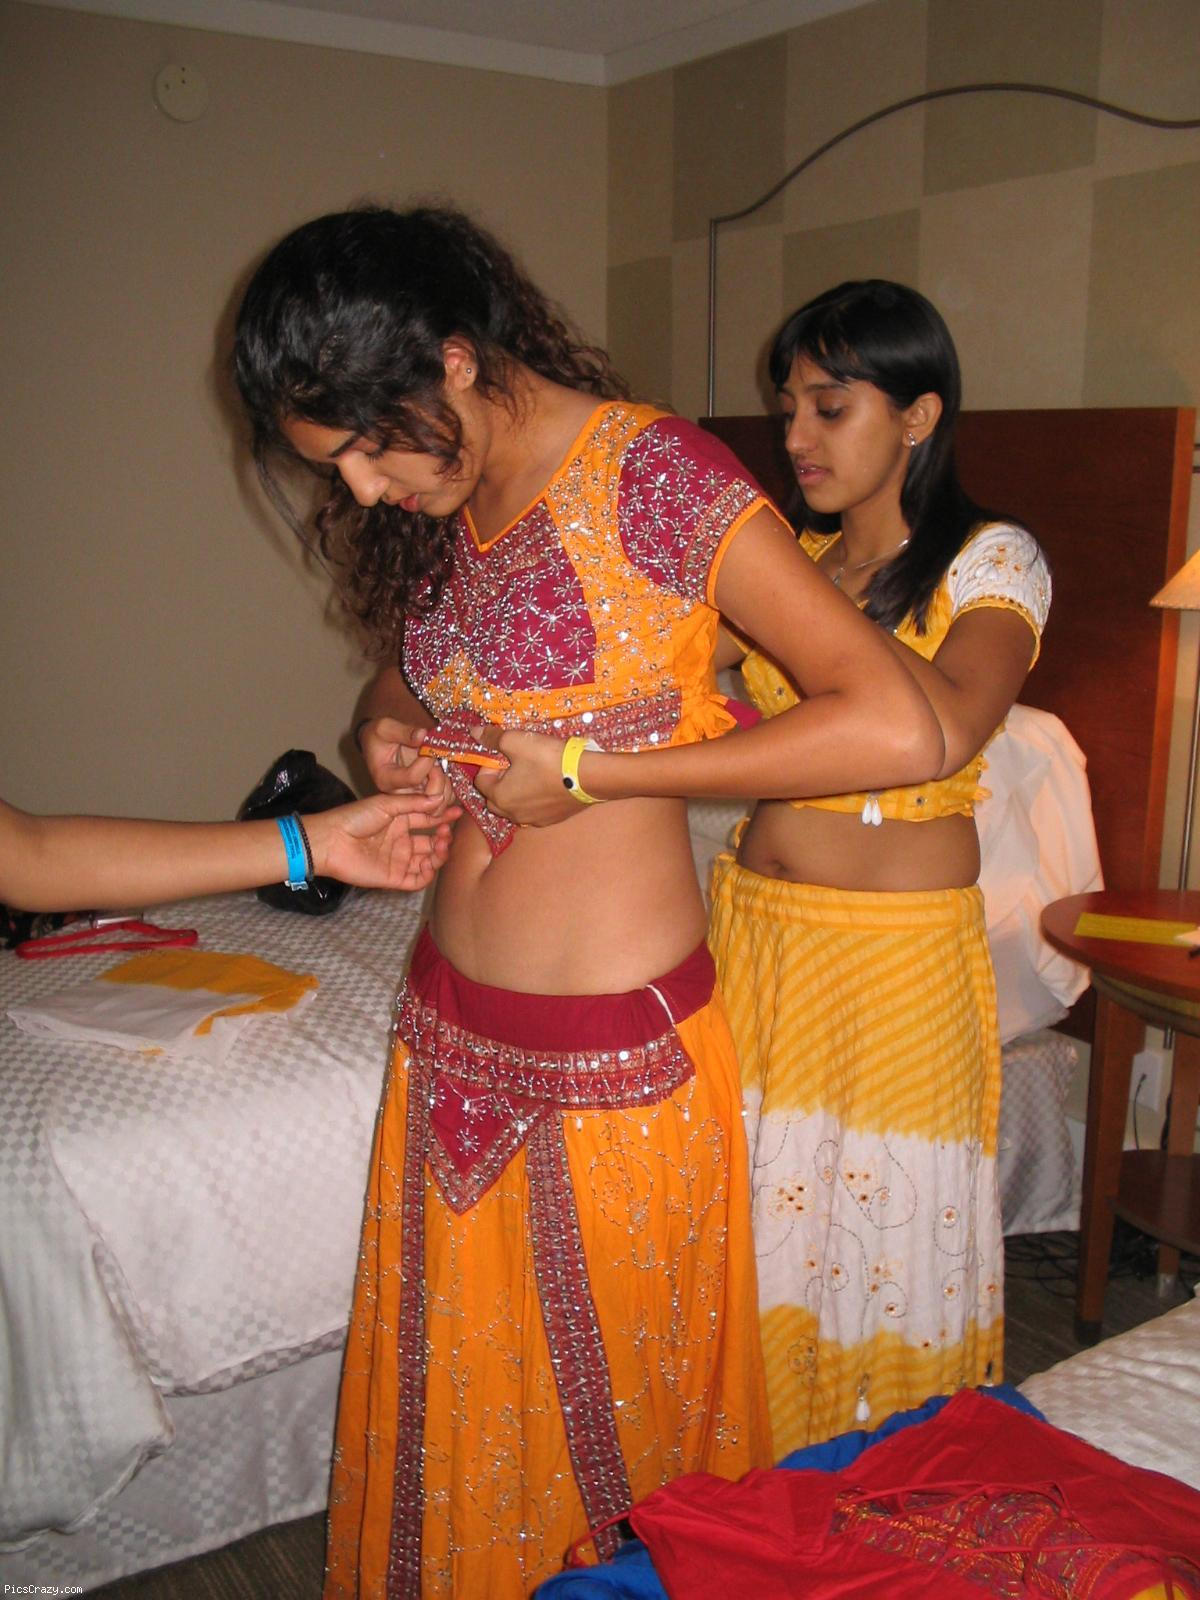 Indian Gf Indian Dulhan Navel Showing In Changing Room -4457